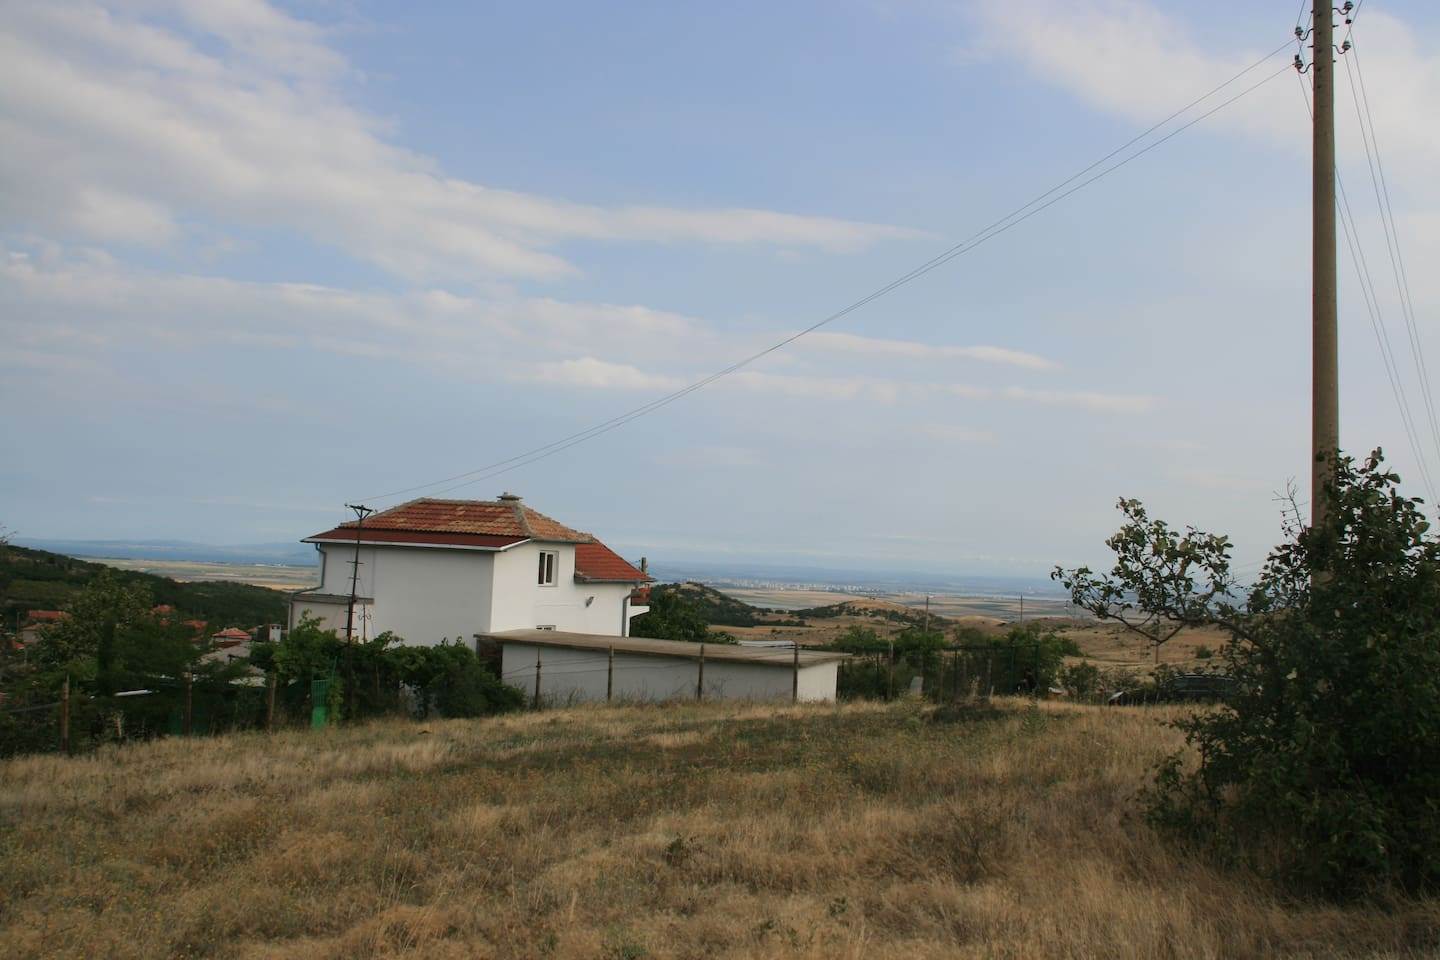 Overview of the house